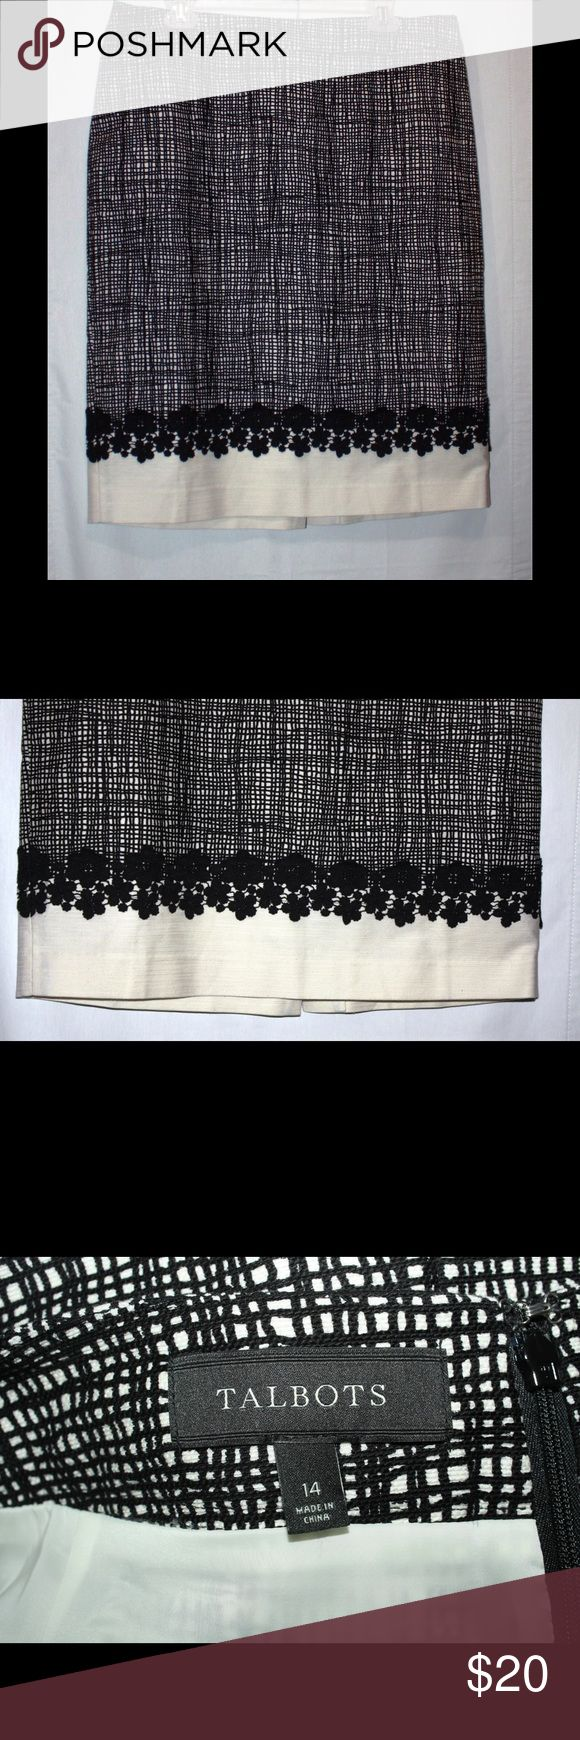 "Talbots Color Block Lace Trim Skirt Beautiful black and white skirt with cotton lace trims. Measurements: Length - 24"", Waist - 36"". Material: 98% cotton, 2% spandex. Talbots Skirts Mini"